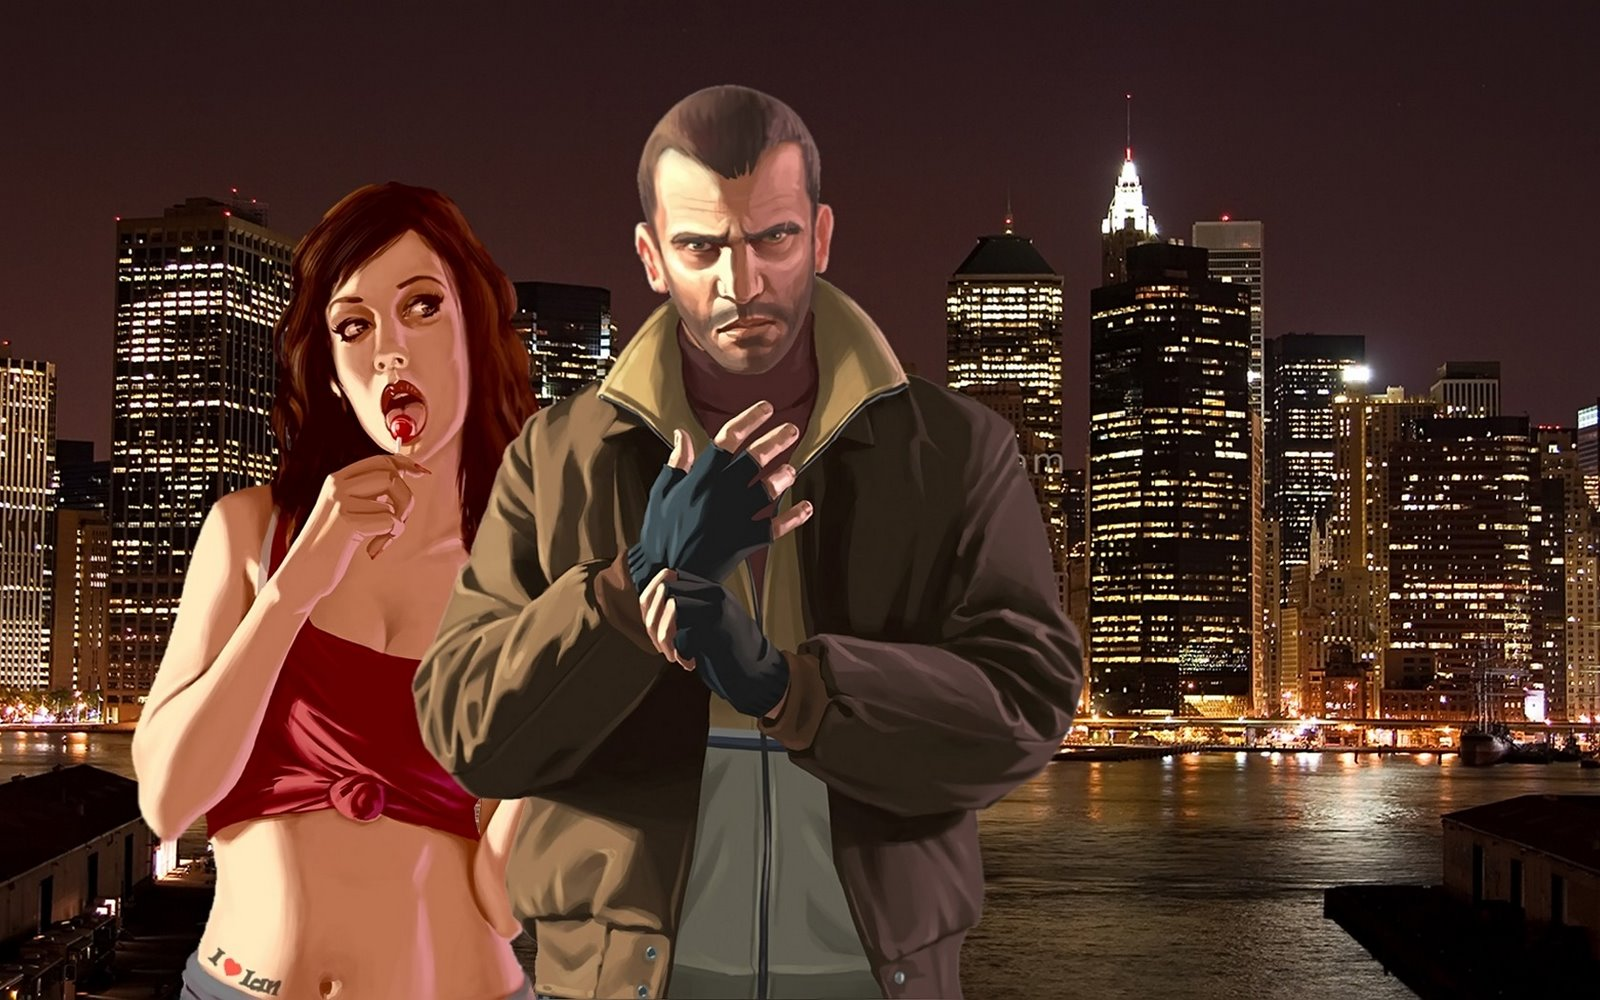 wallpaper: Gta Sa Hd Wallpaper